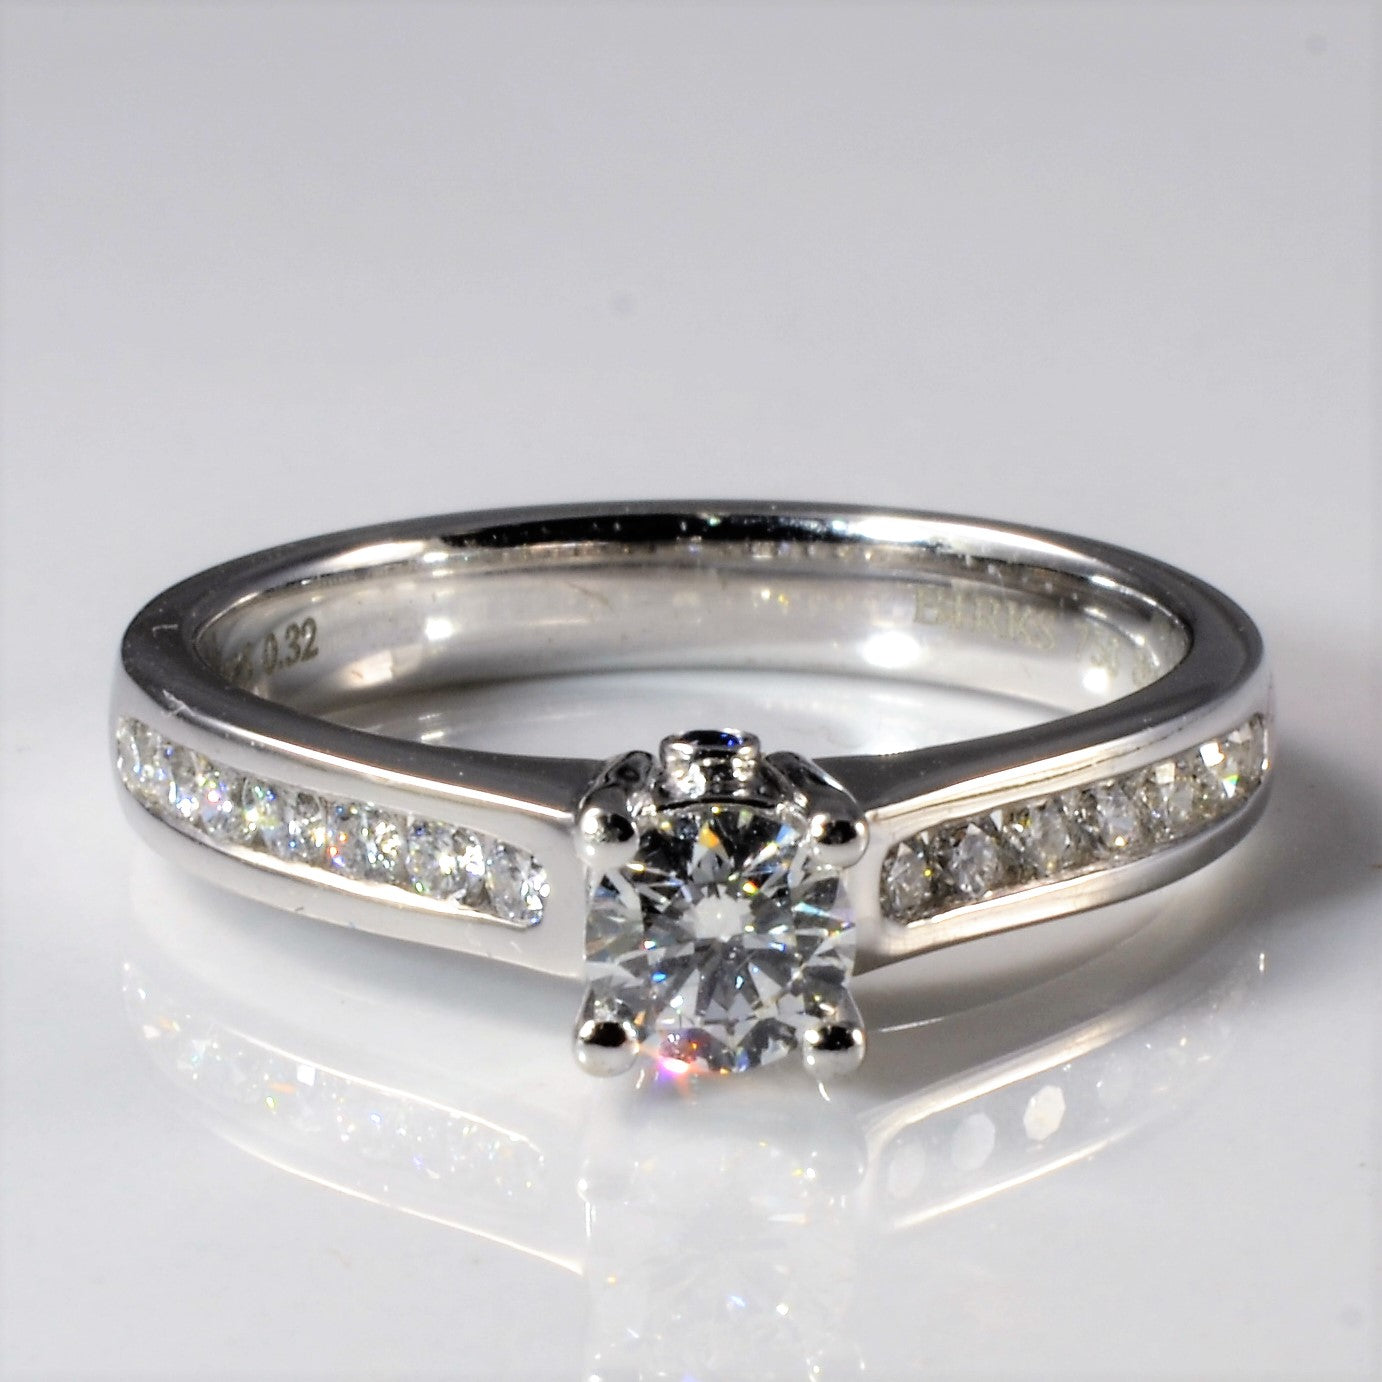 'Birks' Channel Set Side Stone Engagement Ring | 0.60ctw | SZ 7 |